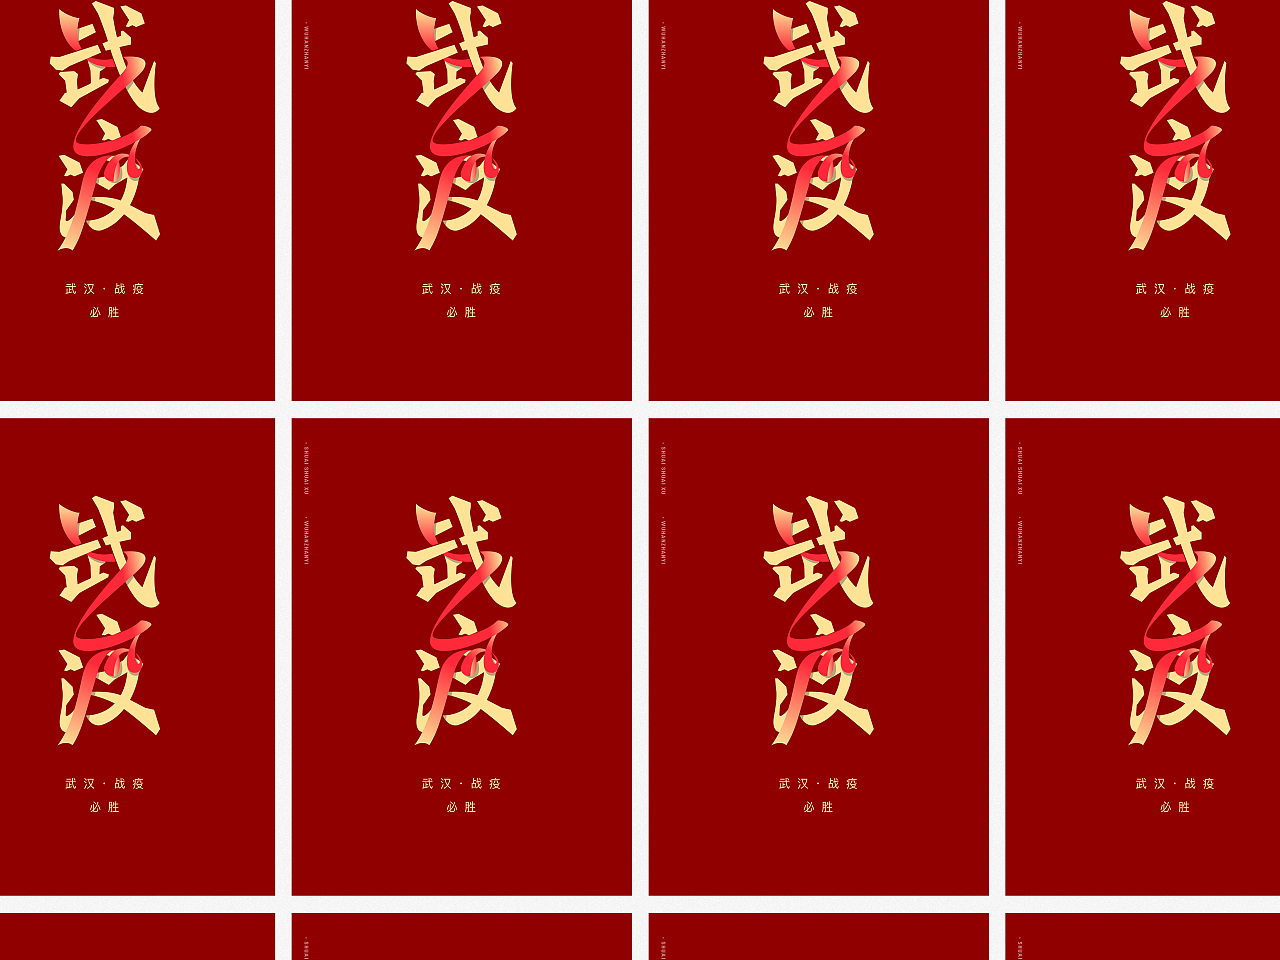 Chinese font design-Wuhan Refueling Series 3